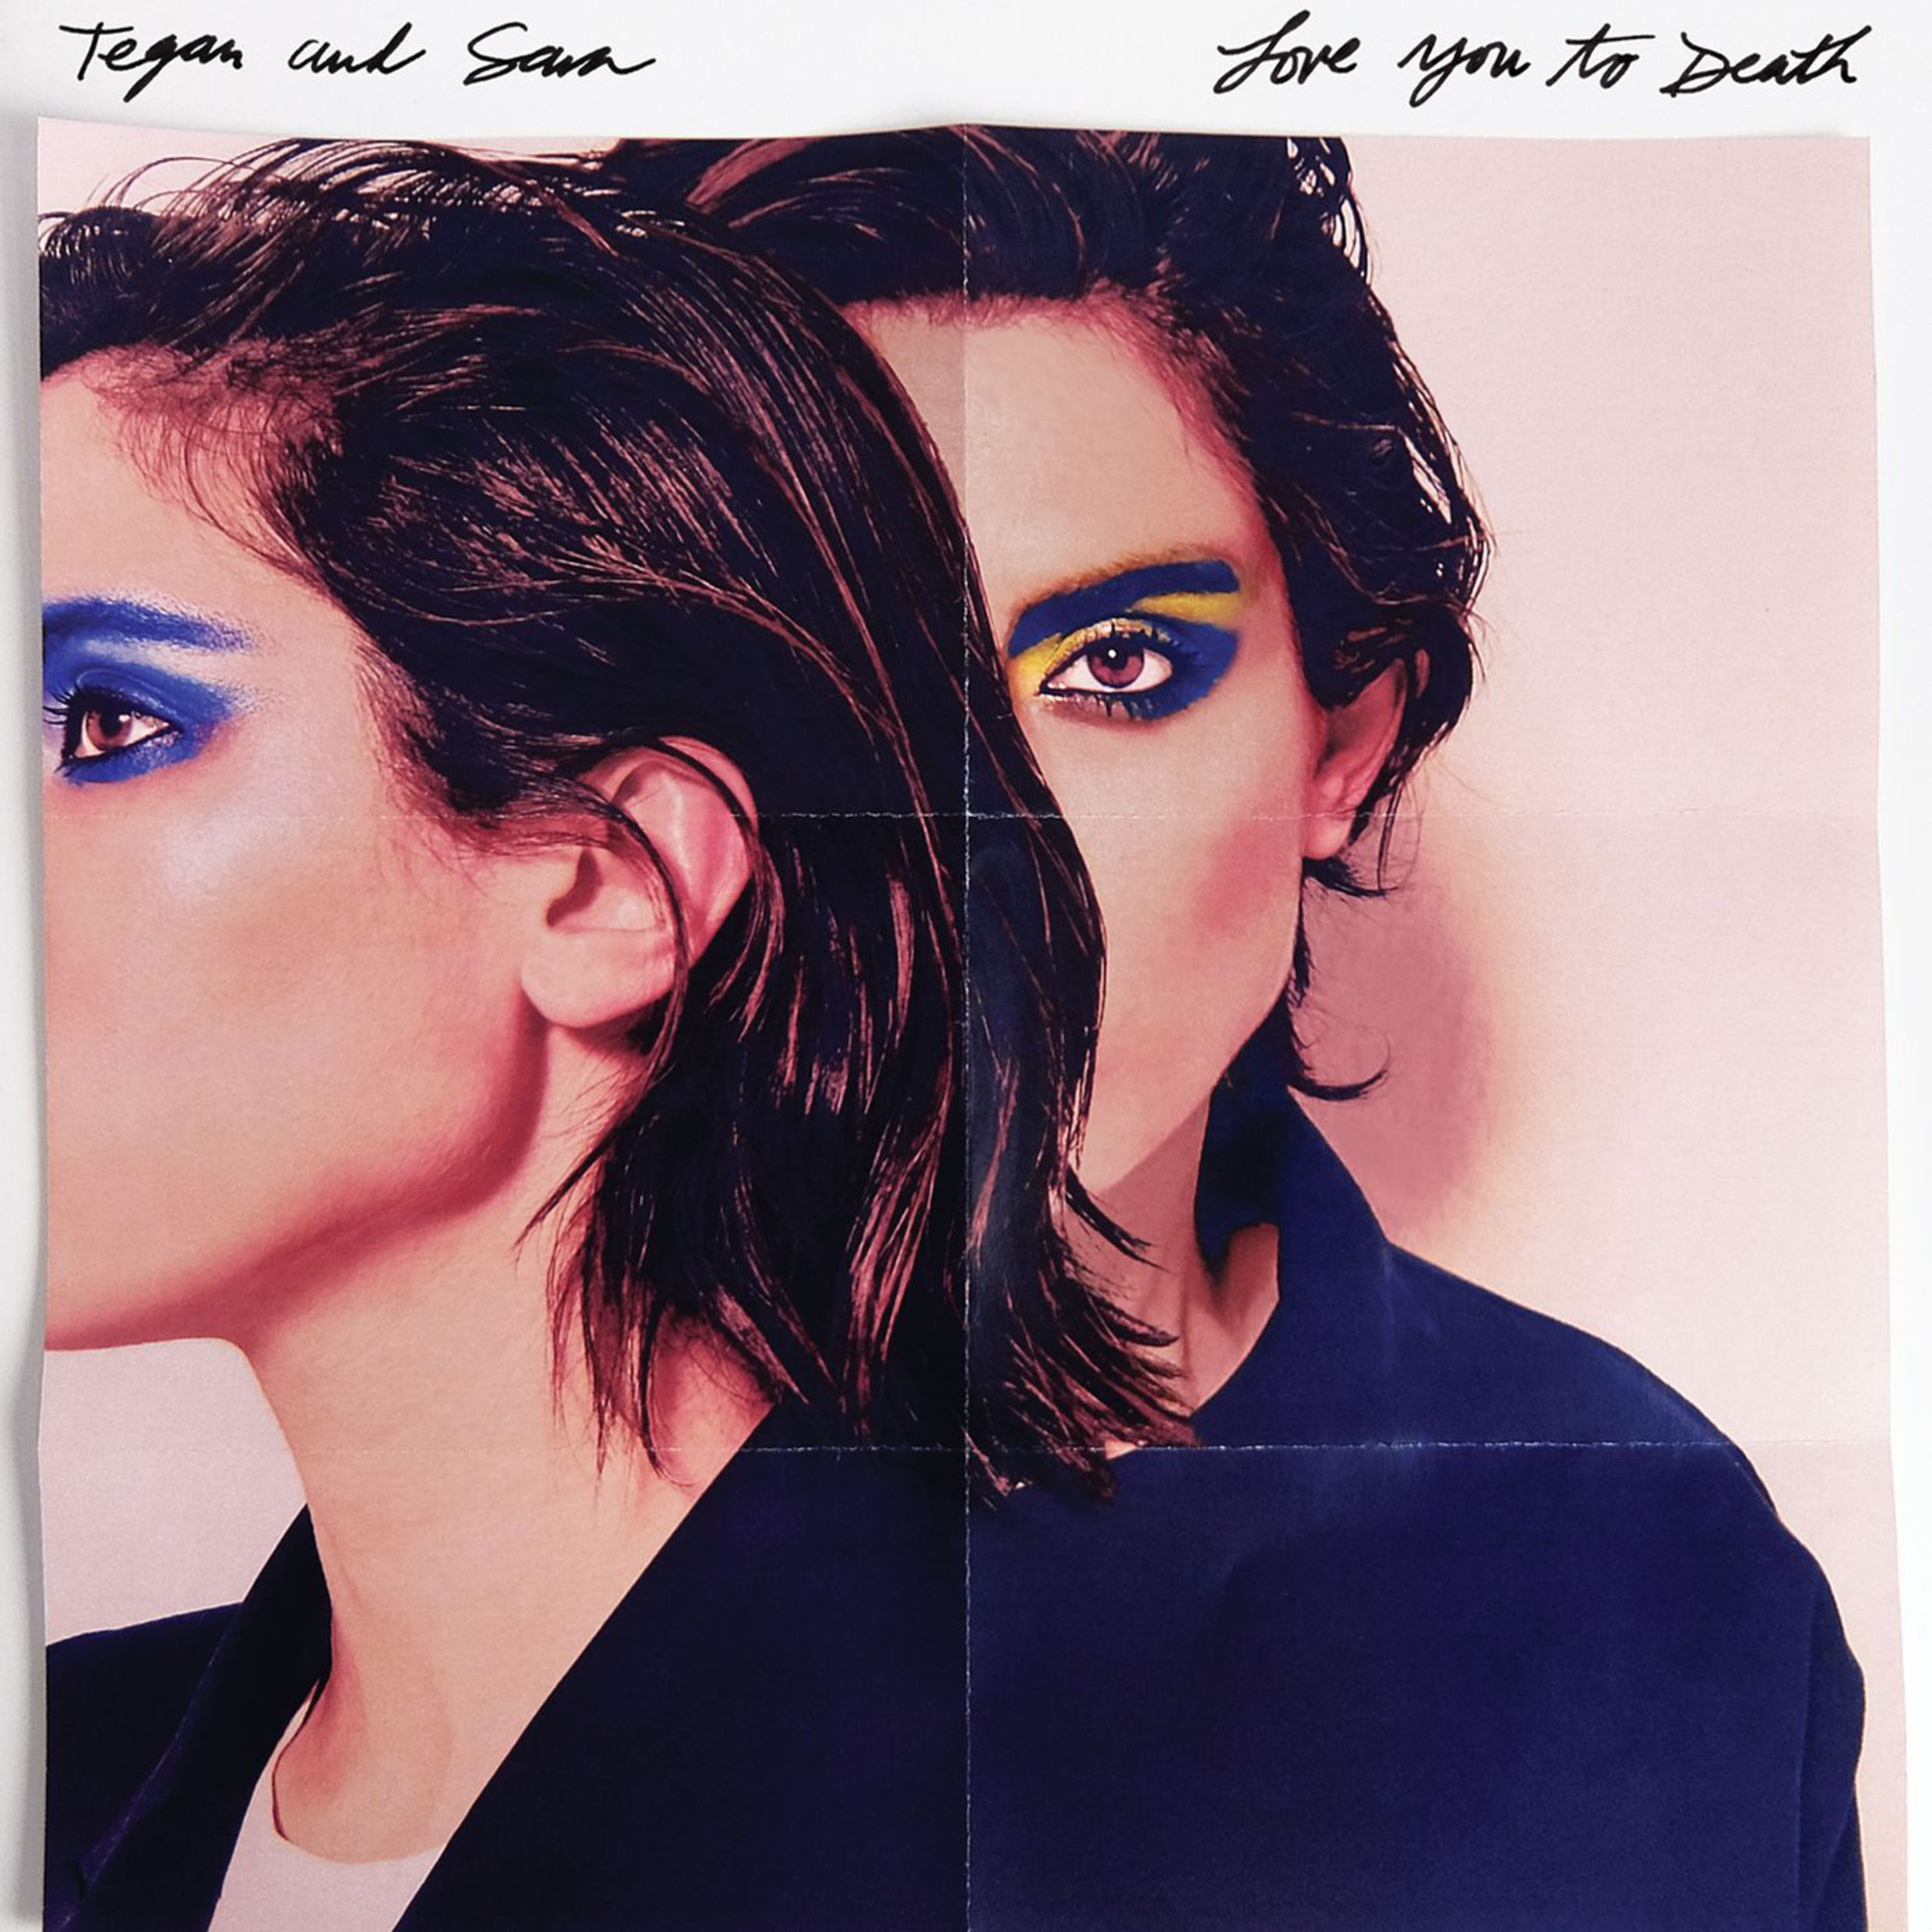 Tegan and Sara - LOVE YOU TO DEATH (VÖ: 3.6.)